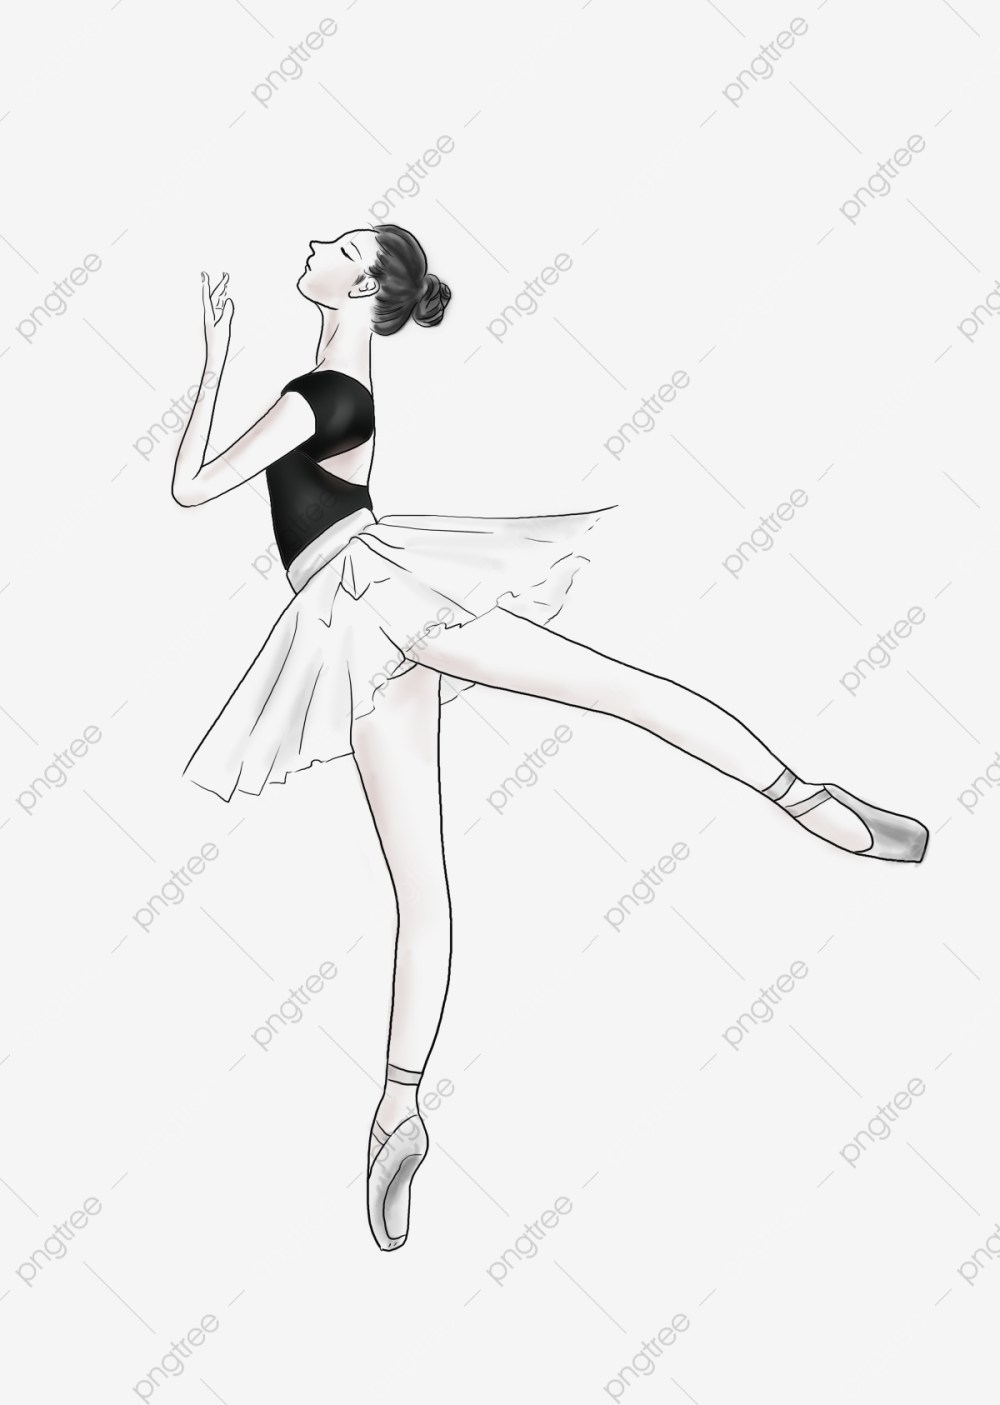 medium resolution of commercial use resource upgrade to premium plan and get license authorization upgradenow ballet dancer ballet clipart